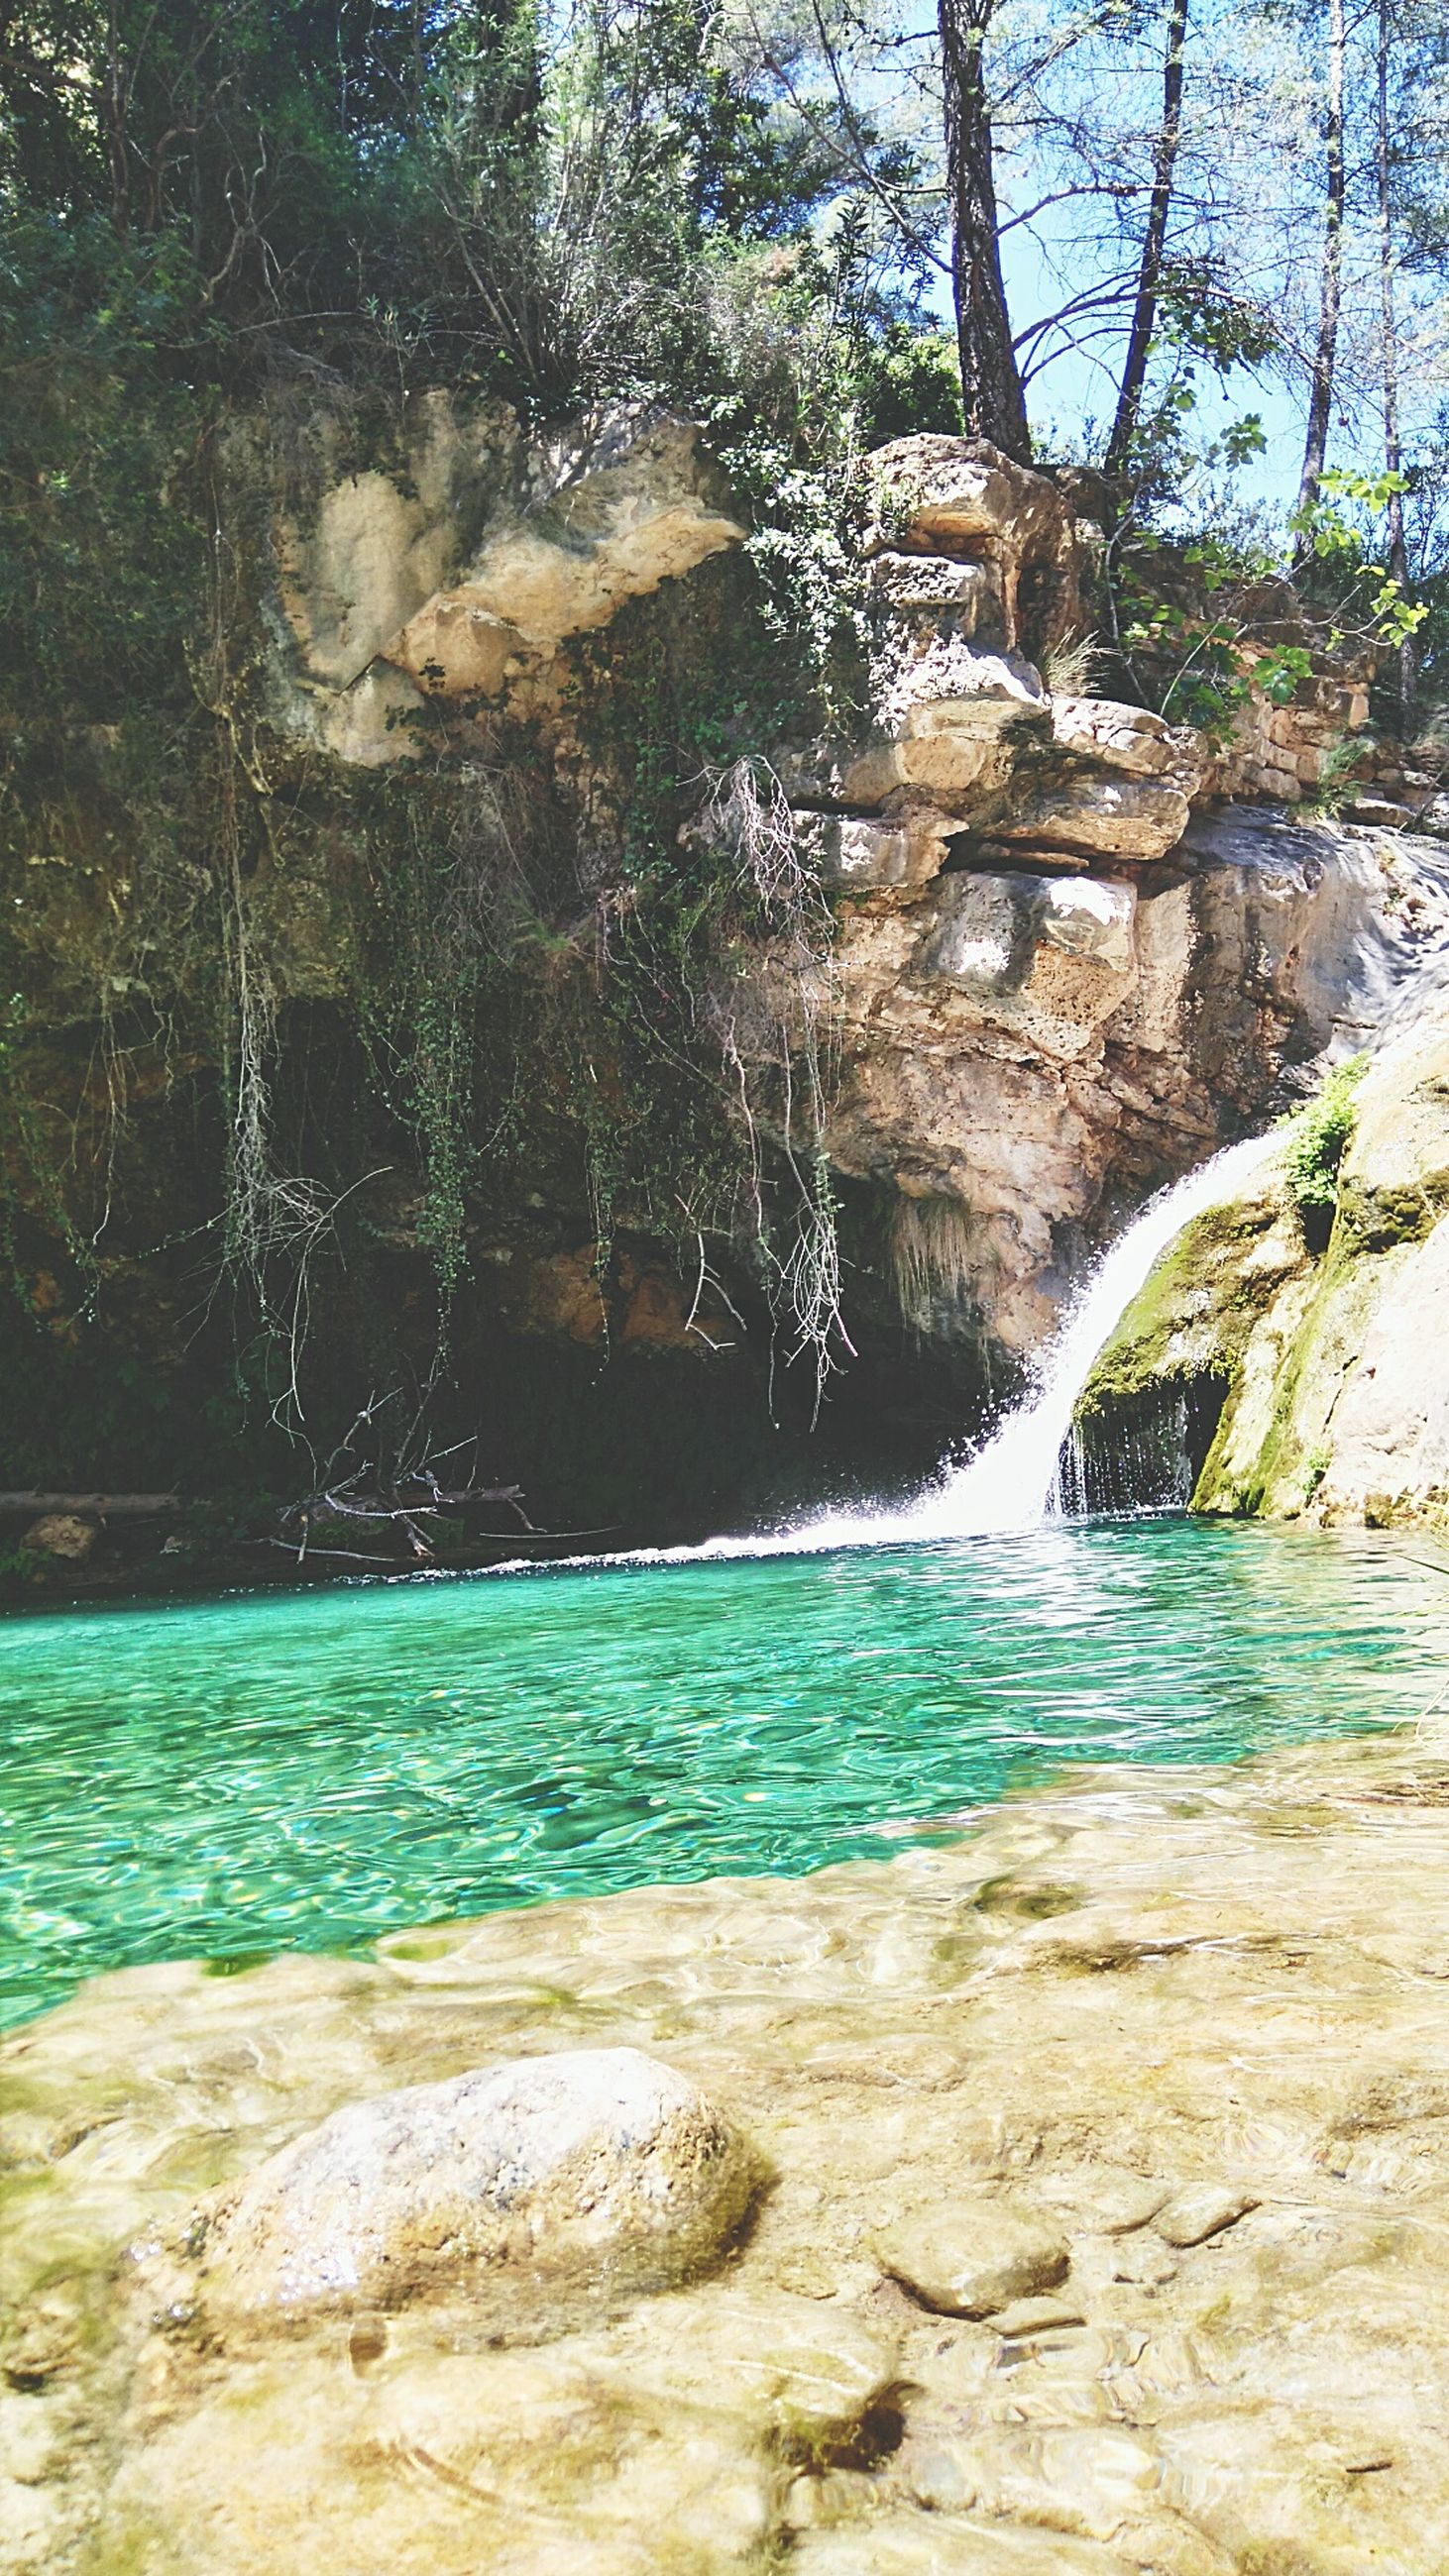 water, tree, motion, rock - object, beauty in nature, waterfall, nature, blue, rock formation, flowing water, scenics, sea, splashing, day, tranquility, sunlight, surf, tranquil scene, outdoors, turquoise colored